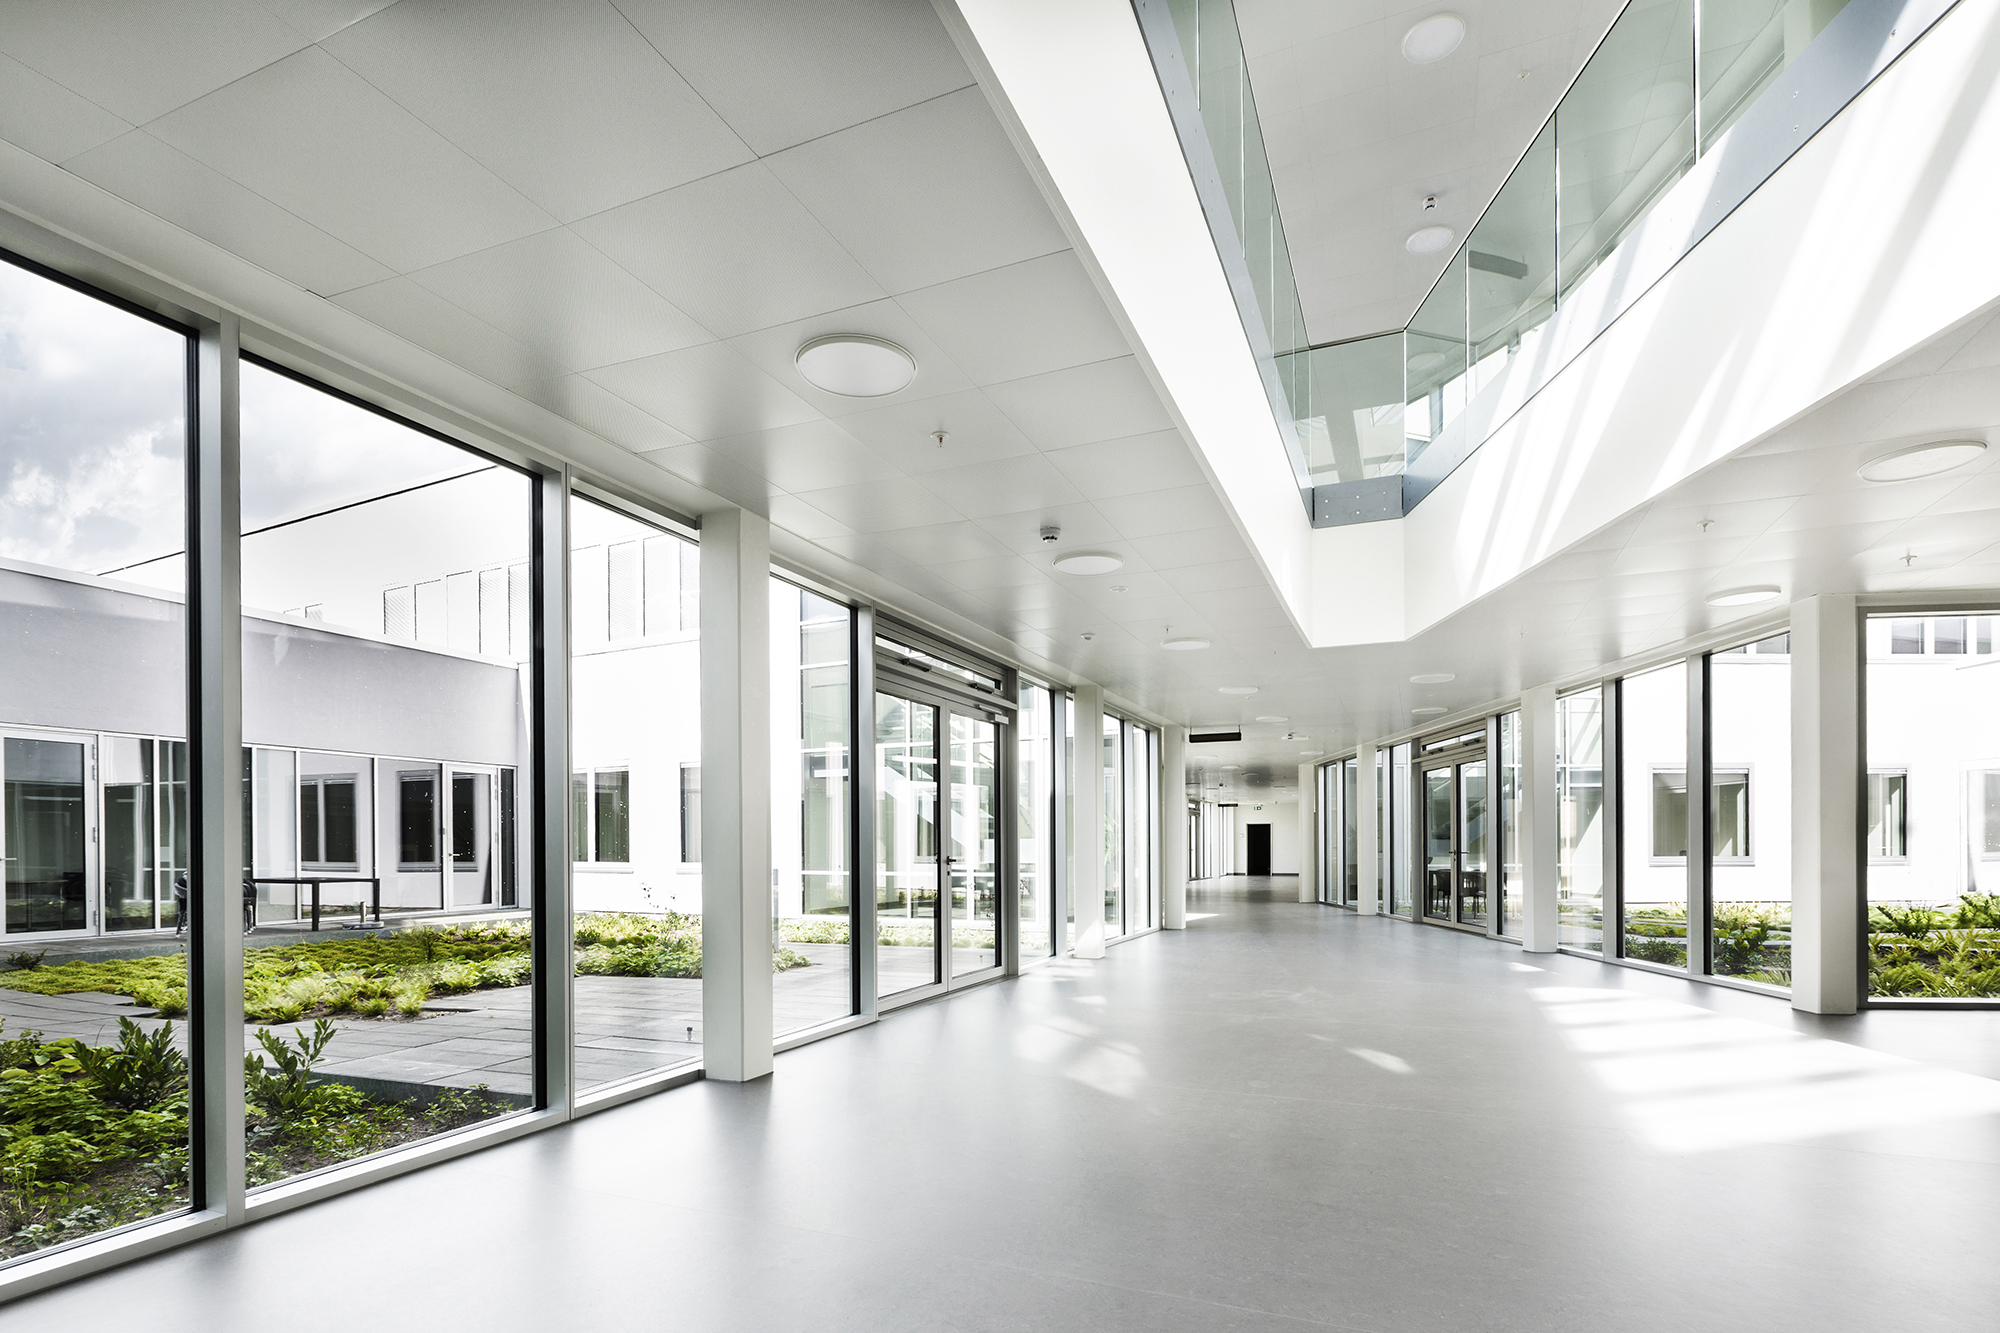 Photo of Aabenraa Psychiatric Hospital by White architects. Photo credit: Signe Find Larsen